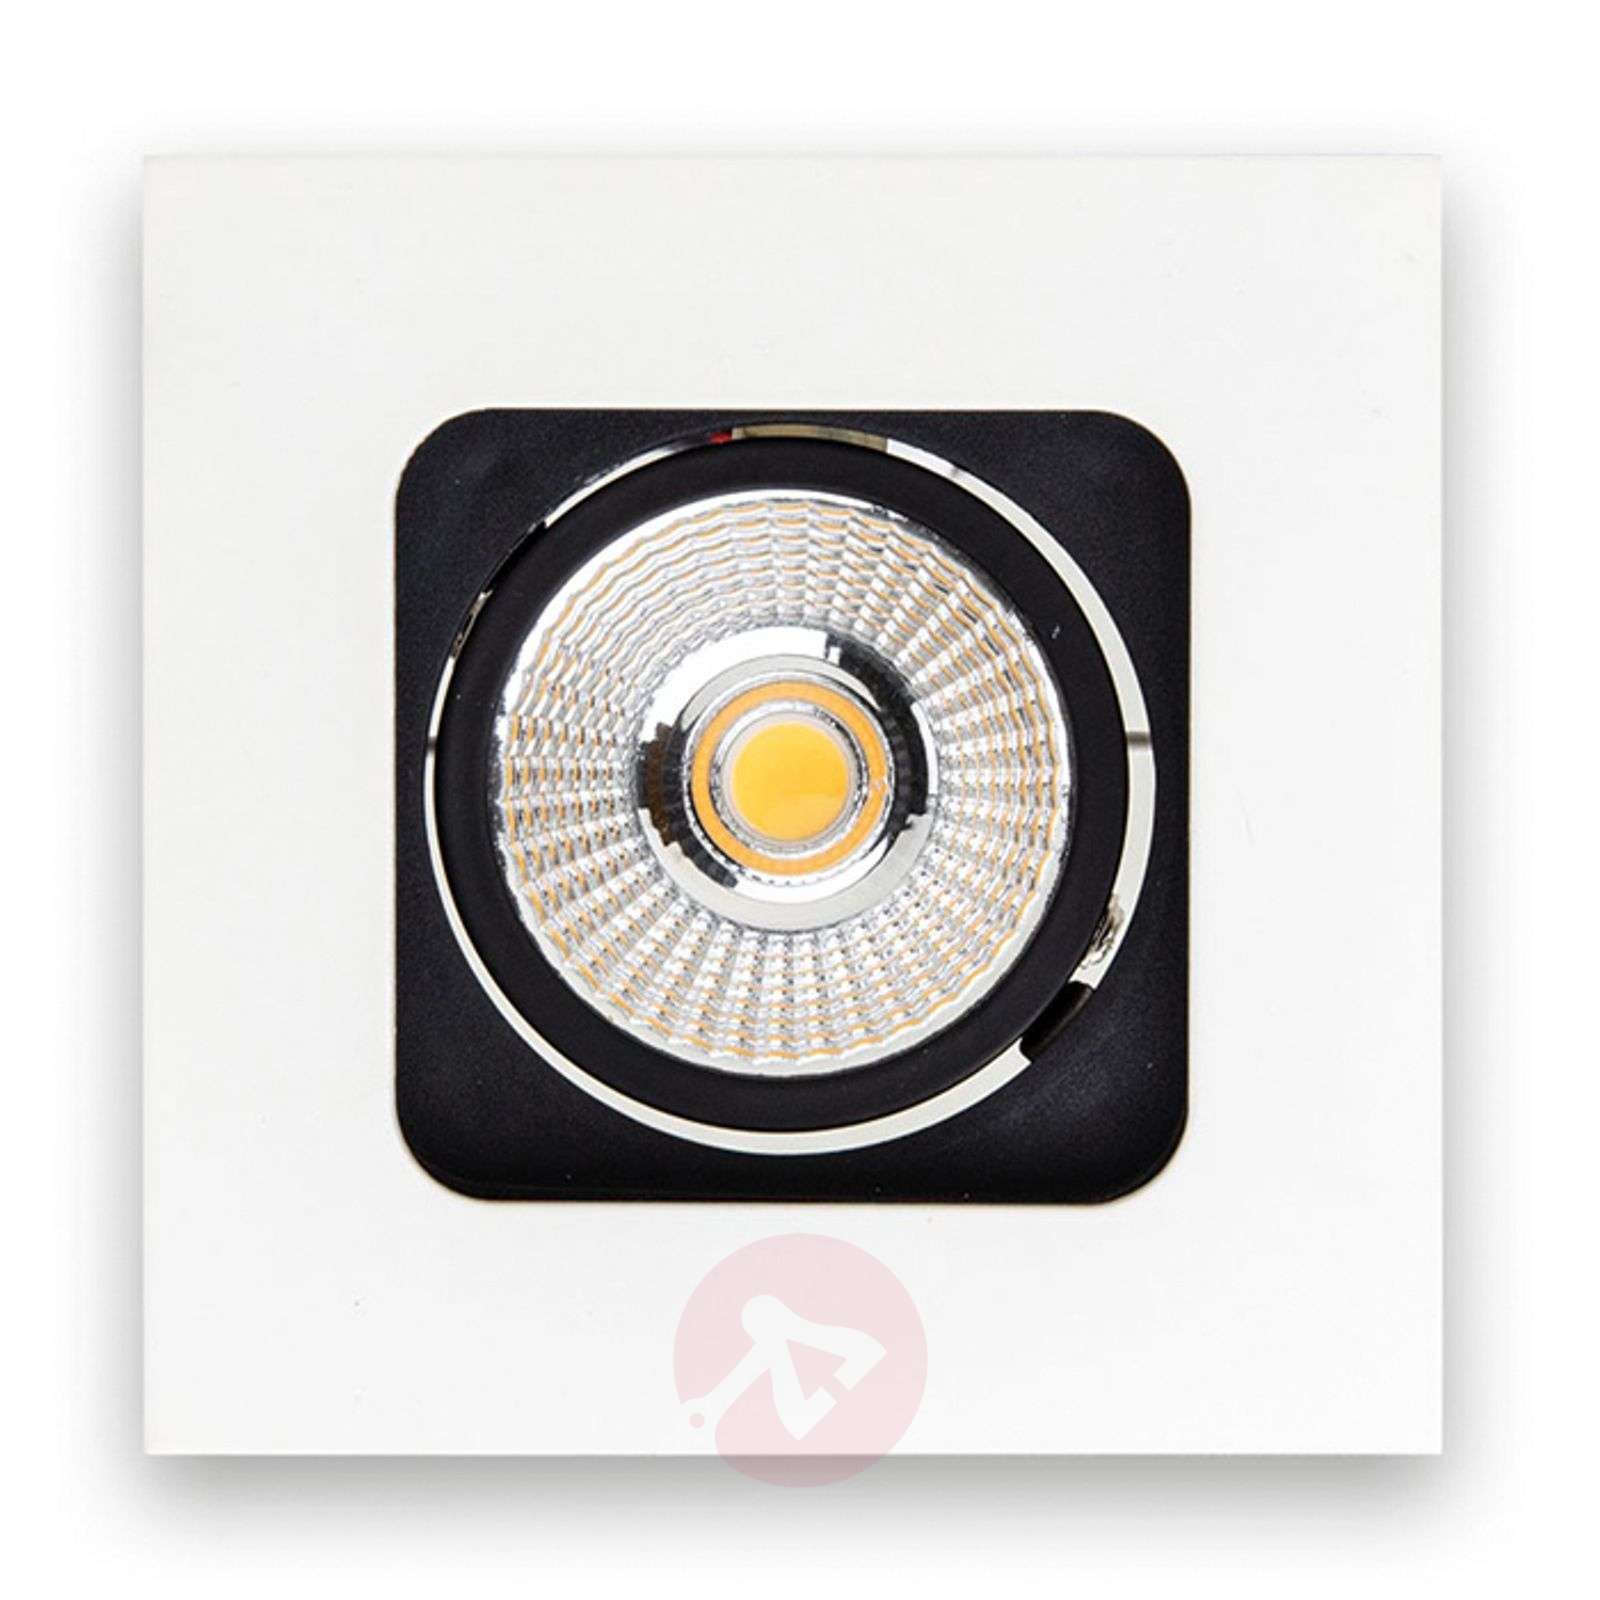 Warm white LED downlight SQL, pivotable-1002447-01